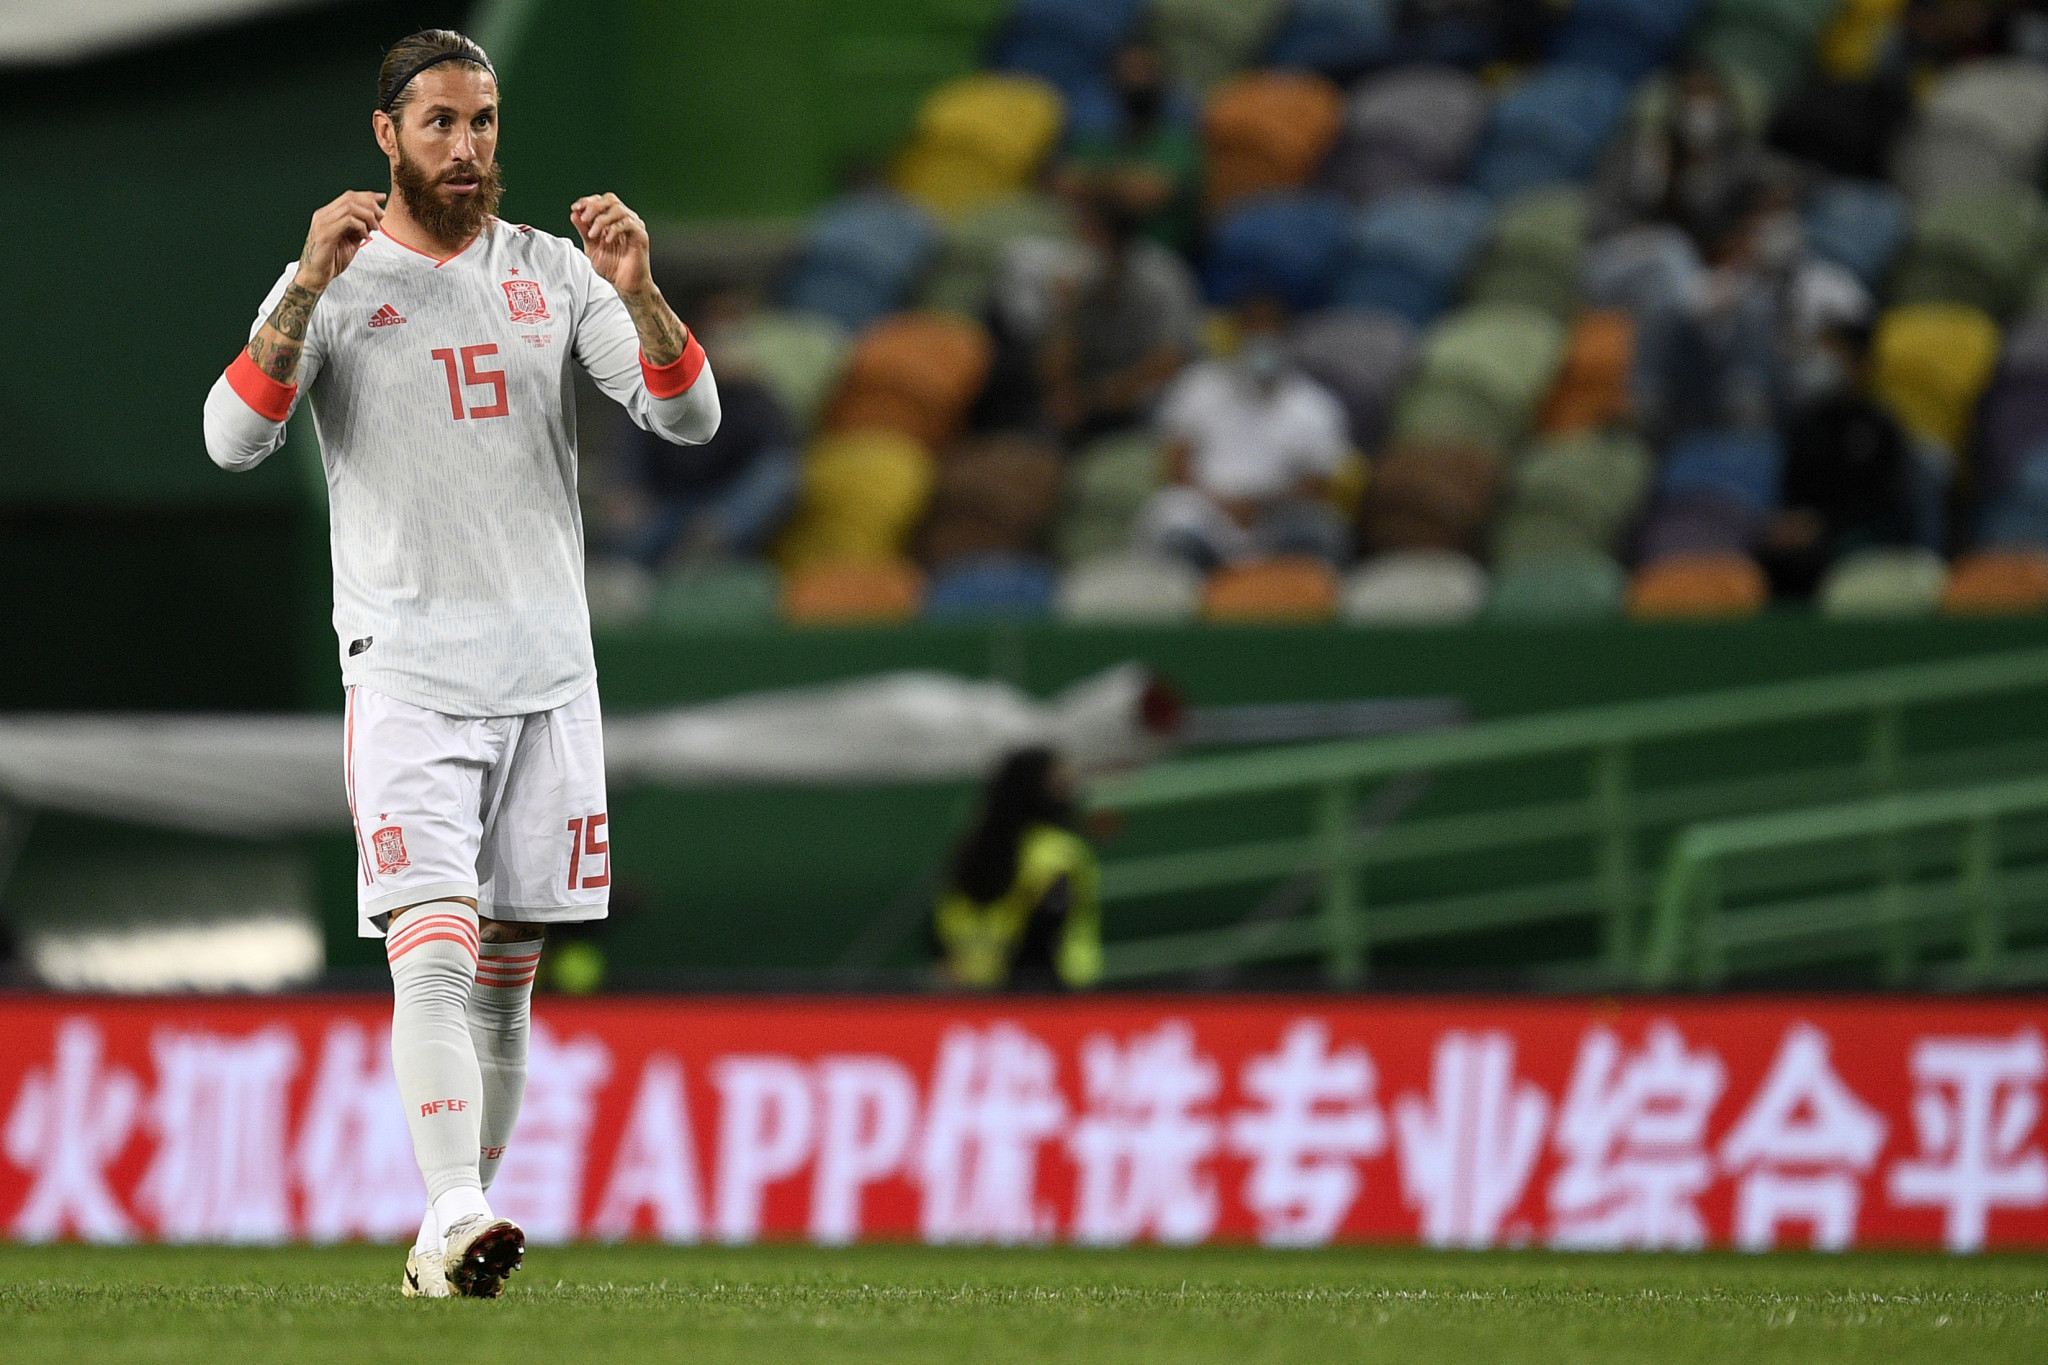 Spanish Football Federation keen for Ramos to compete at Tokyo 2020